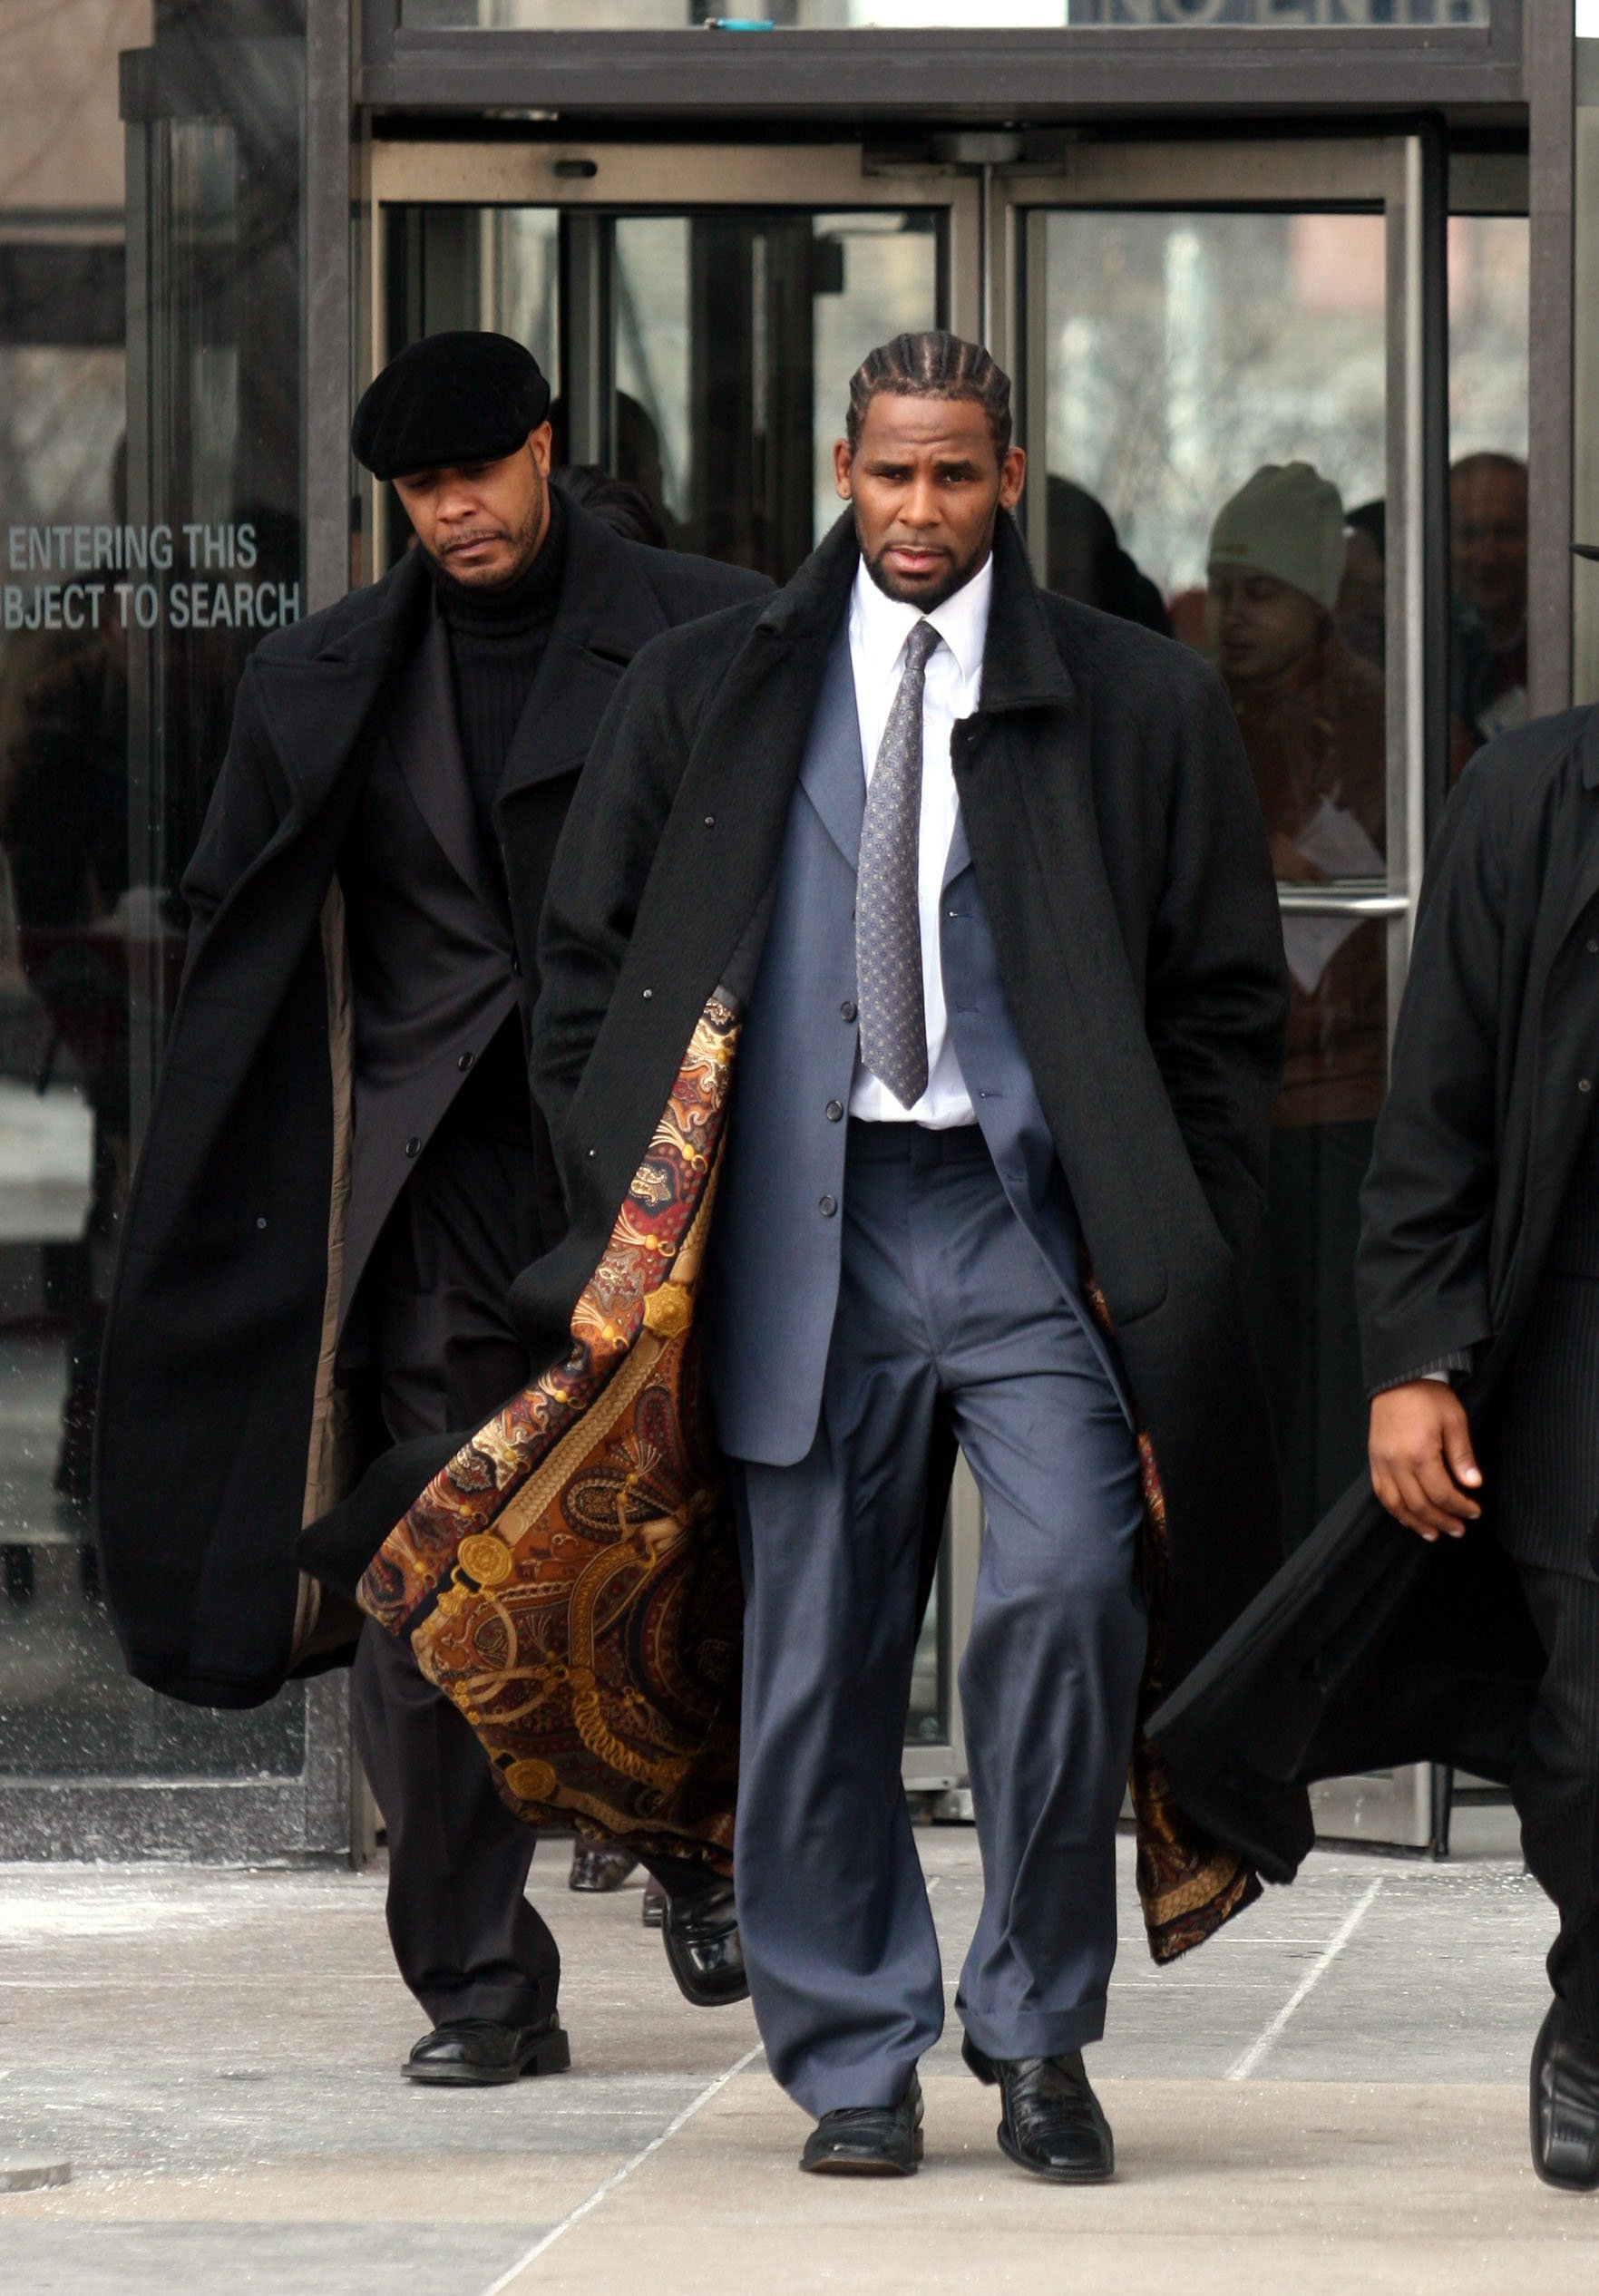 R. Kelly arriving in court to face child pornography charges in 2007.   Photo: Getty Images